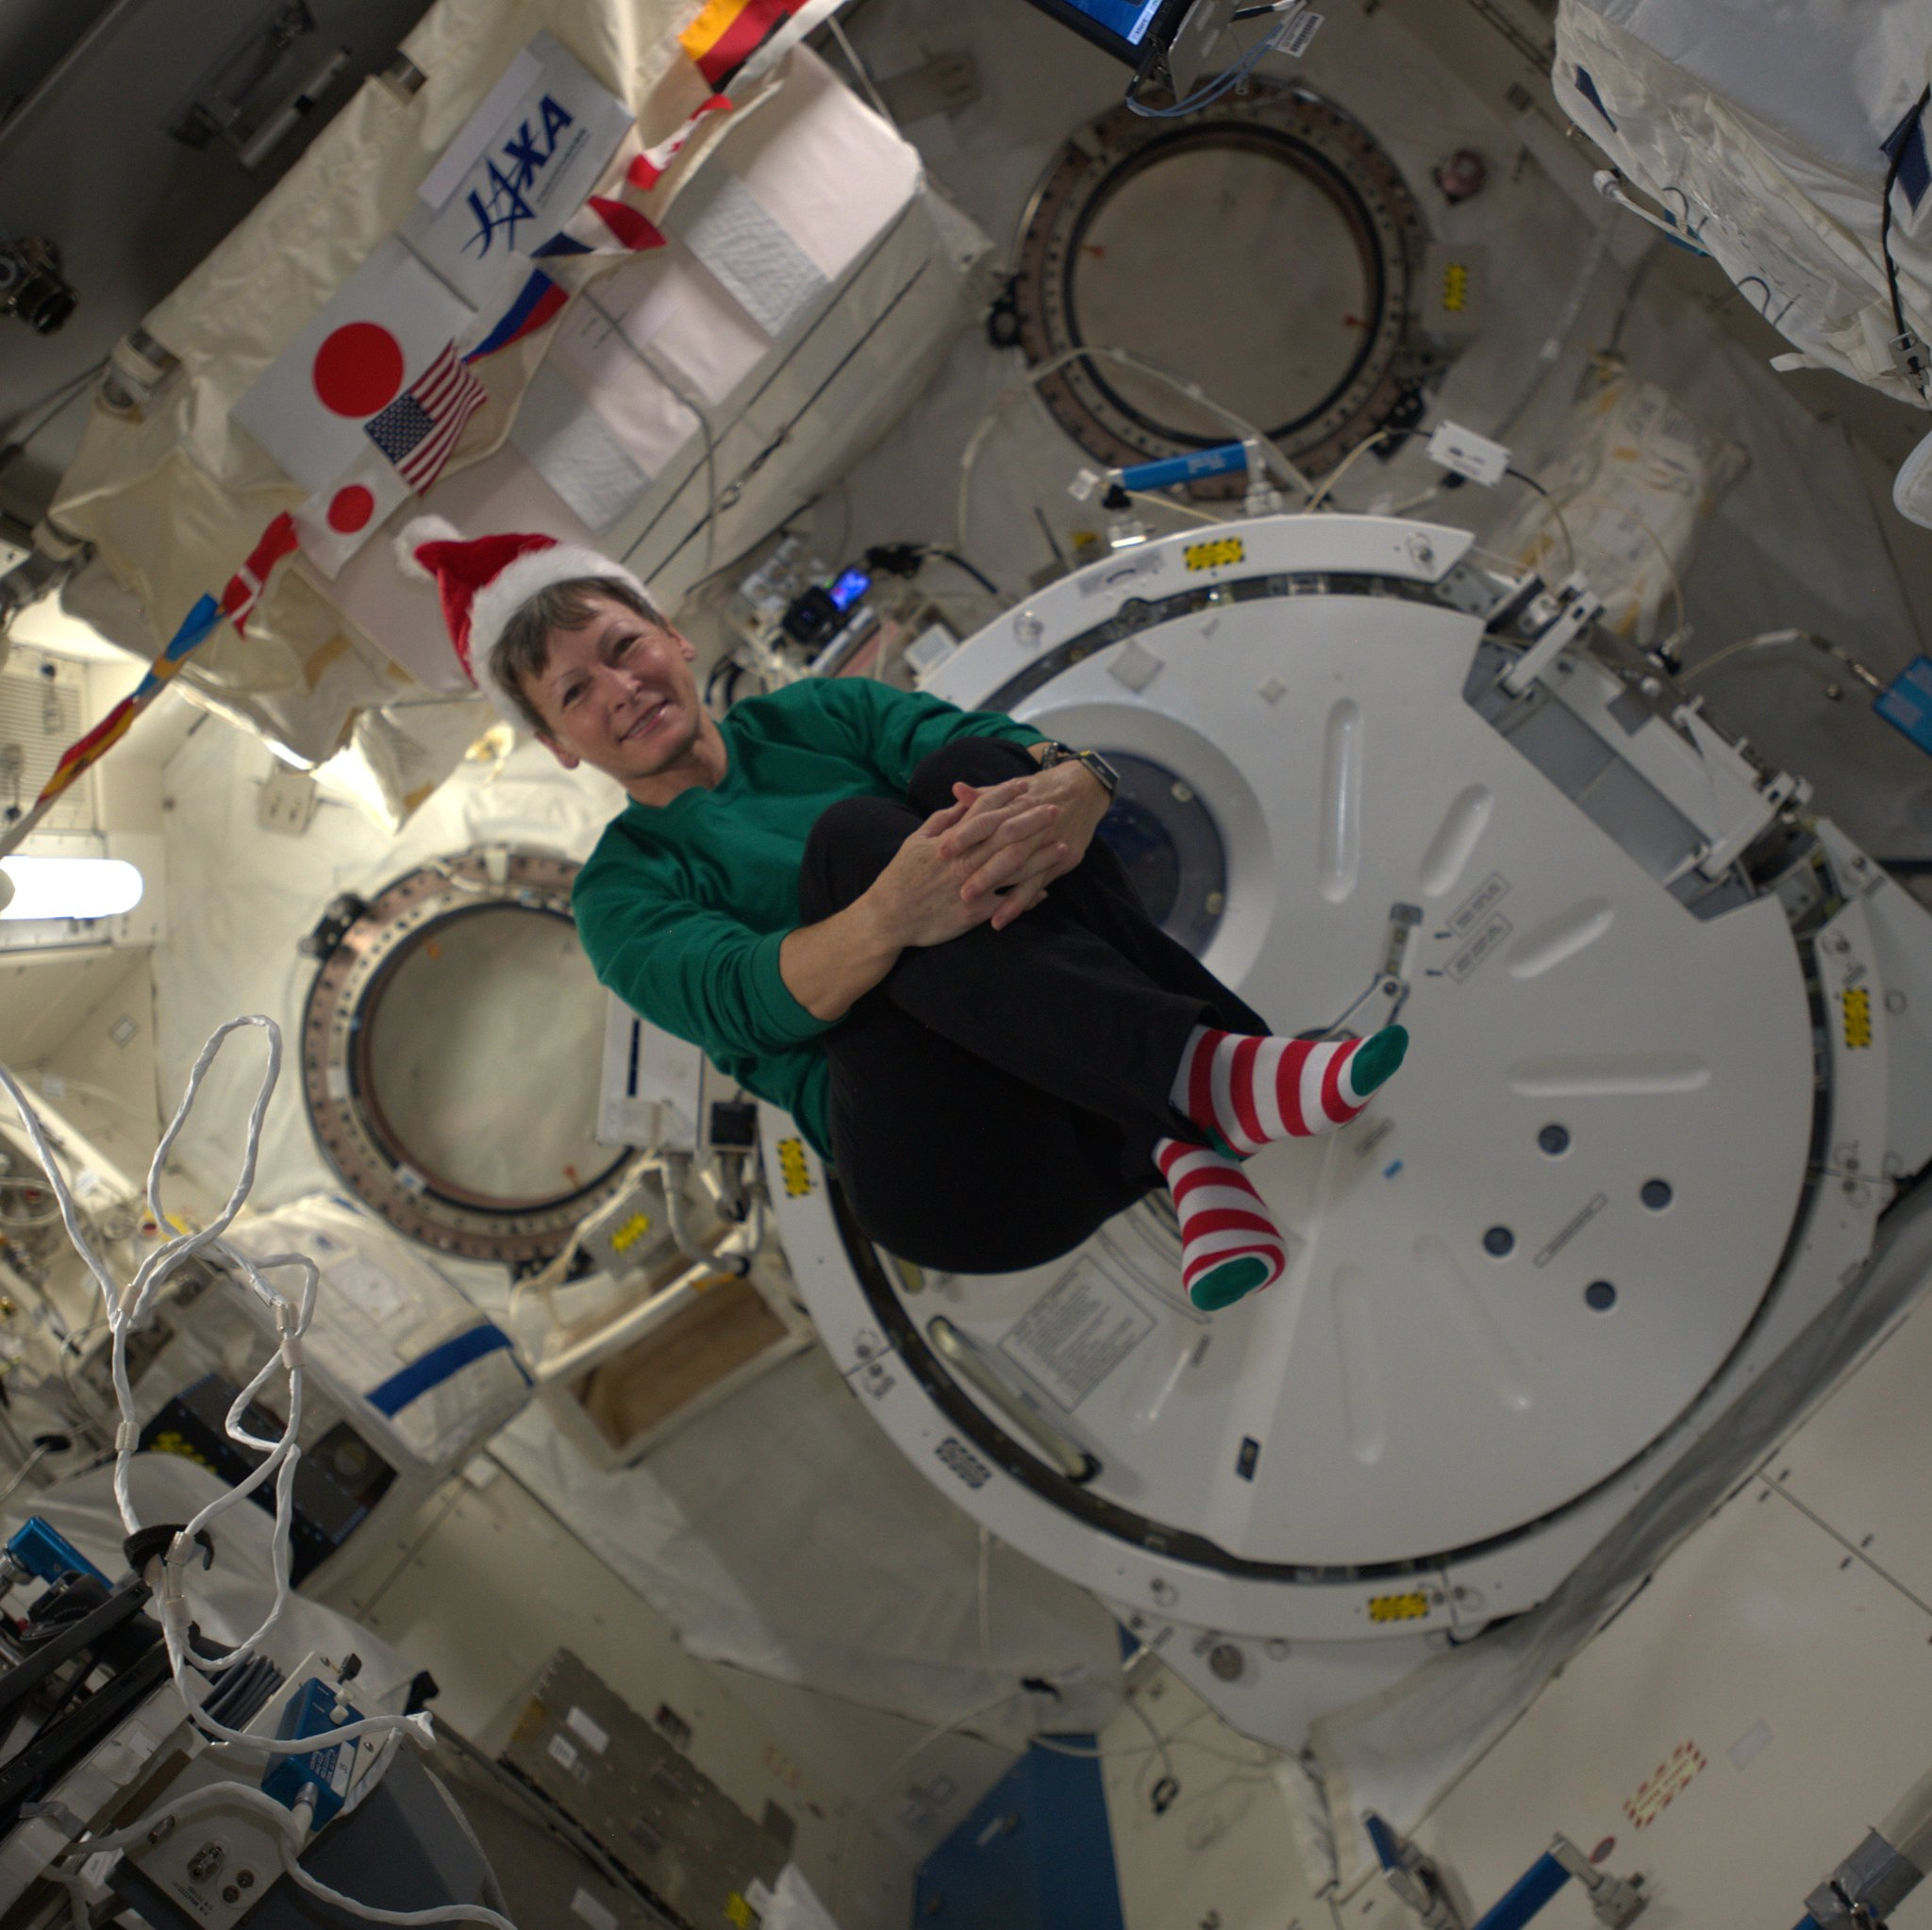 Christmas in Orbit: Astronauts Make Merry Aboard the Space Station